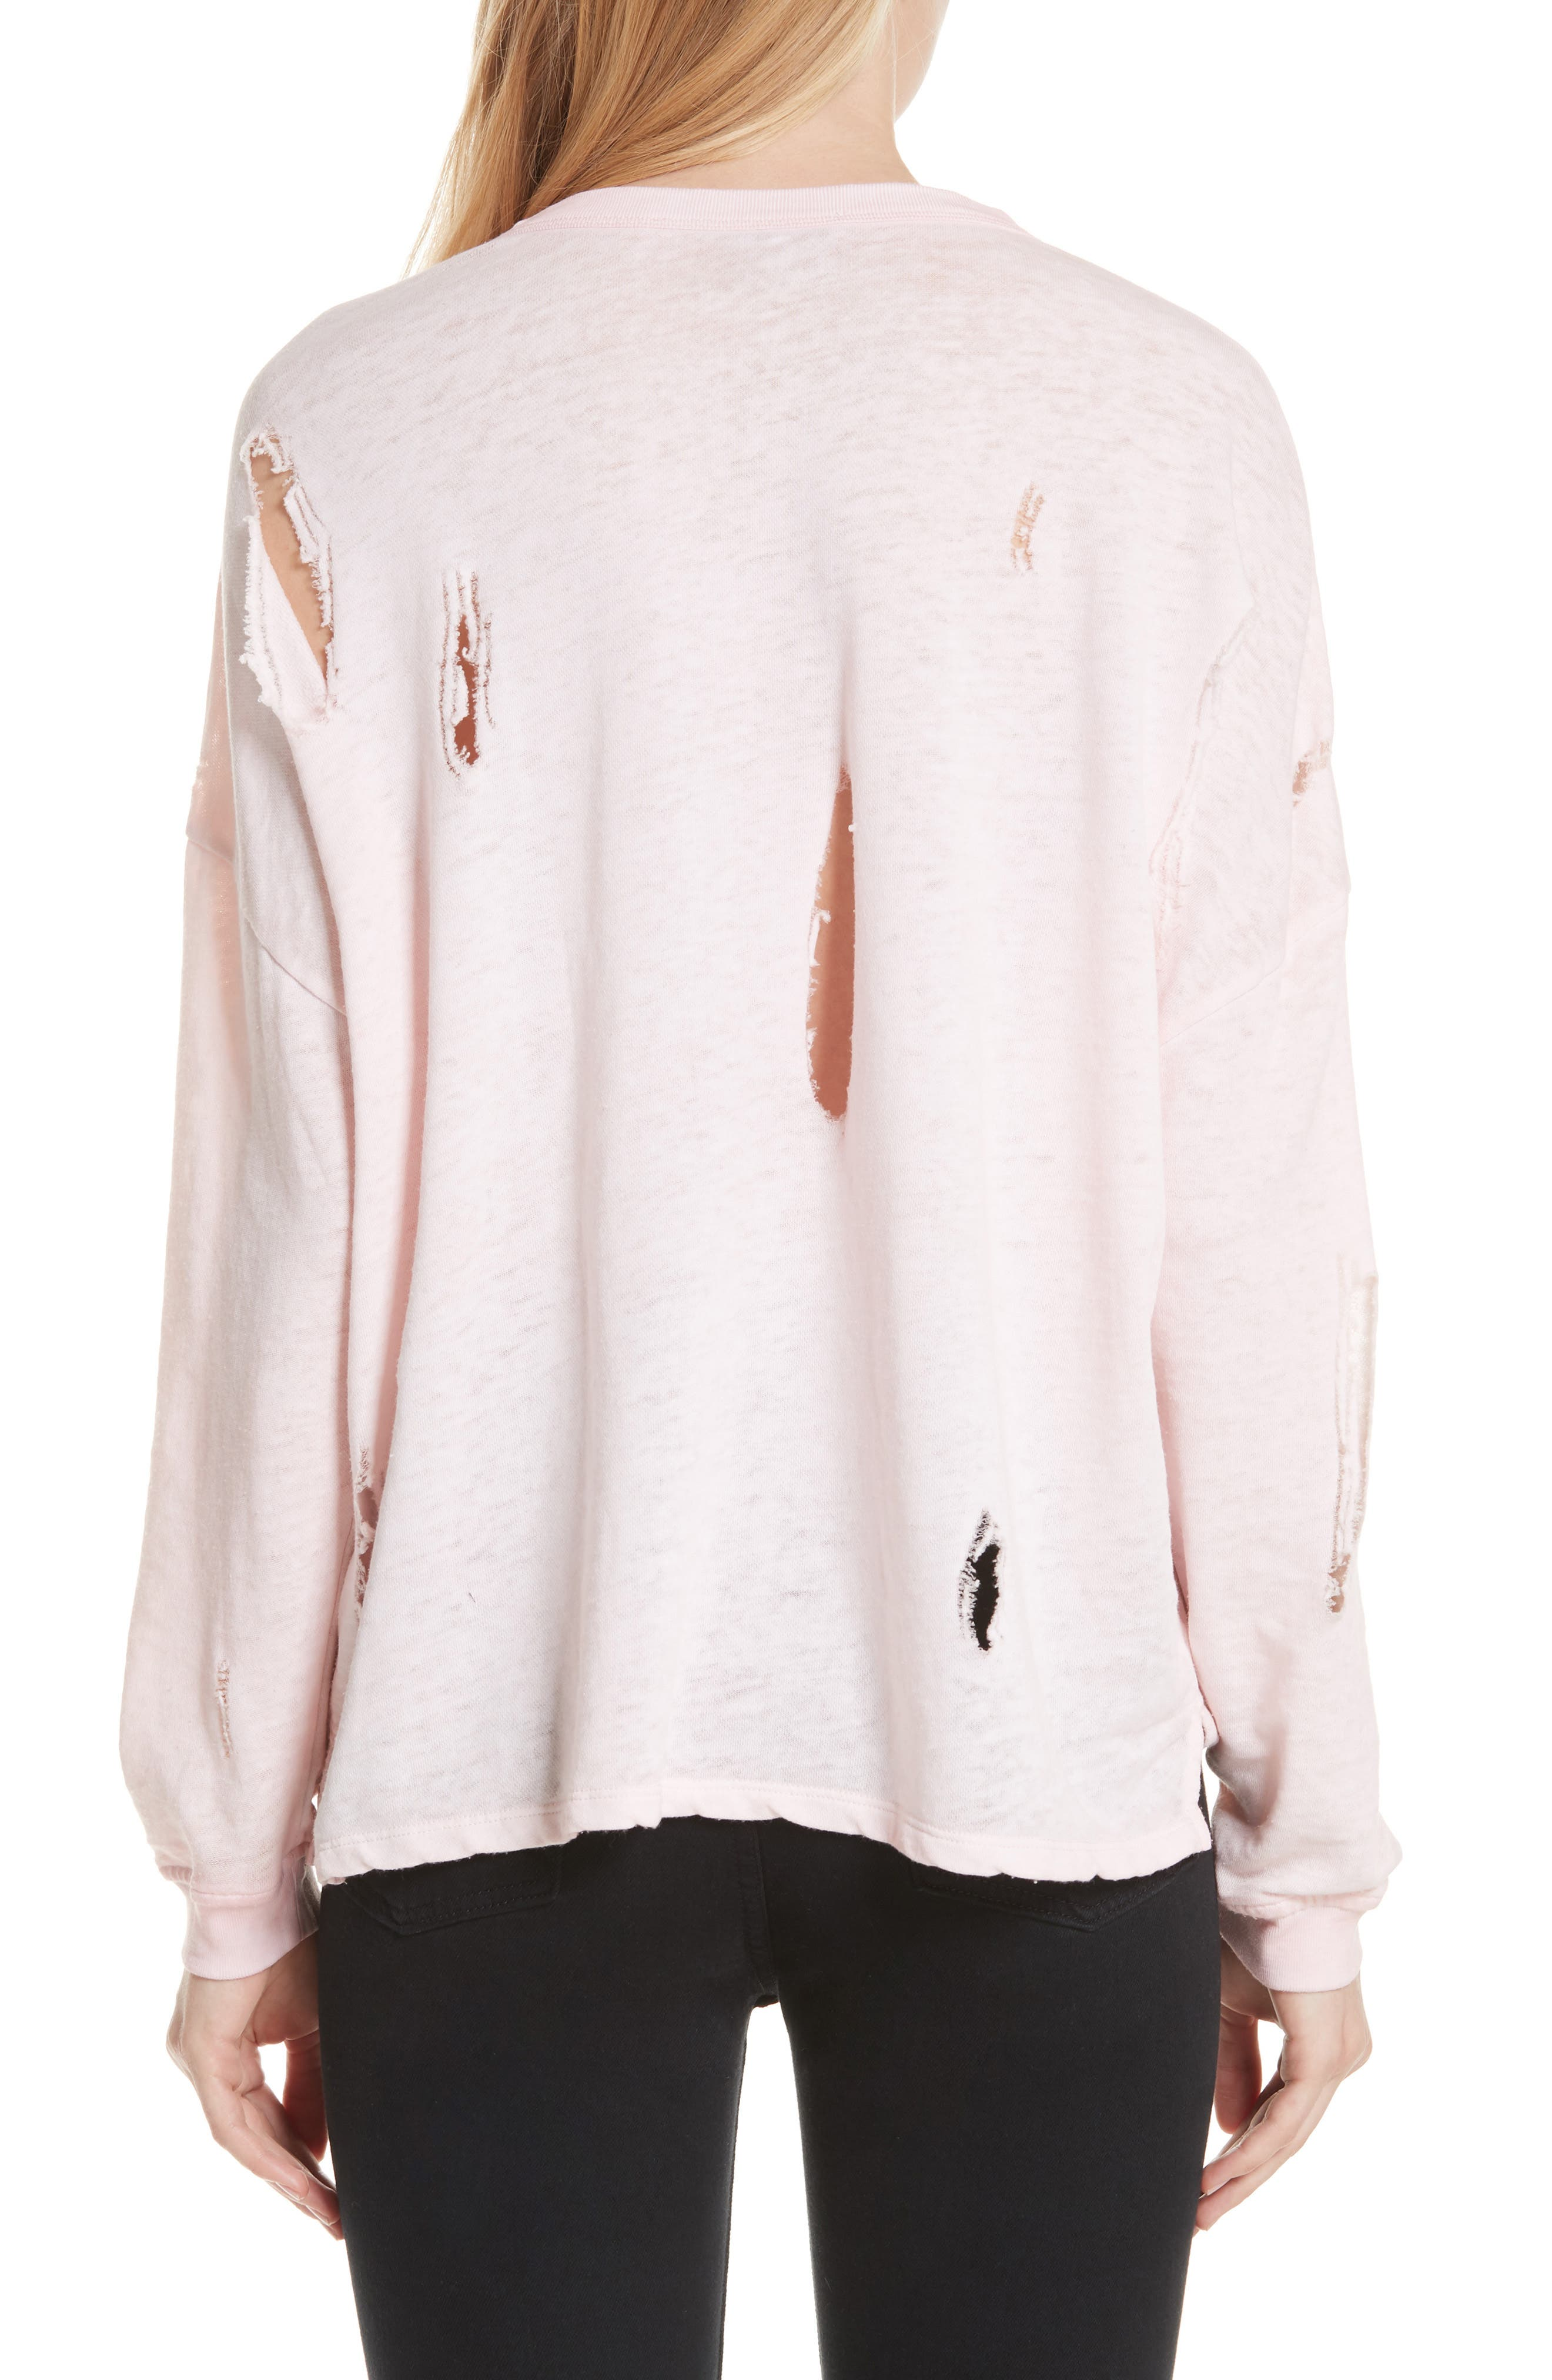 Lyzza Distressed Sweatshirt,                             Alternate thumbnail 2, color,                             680